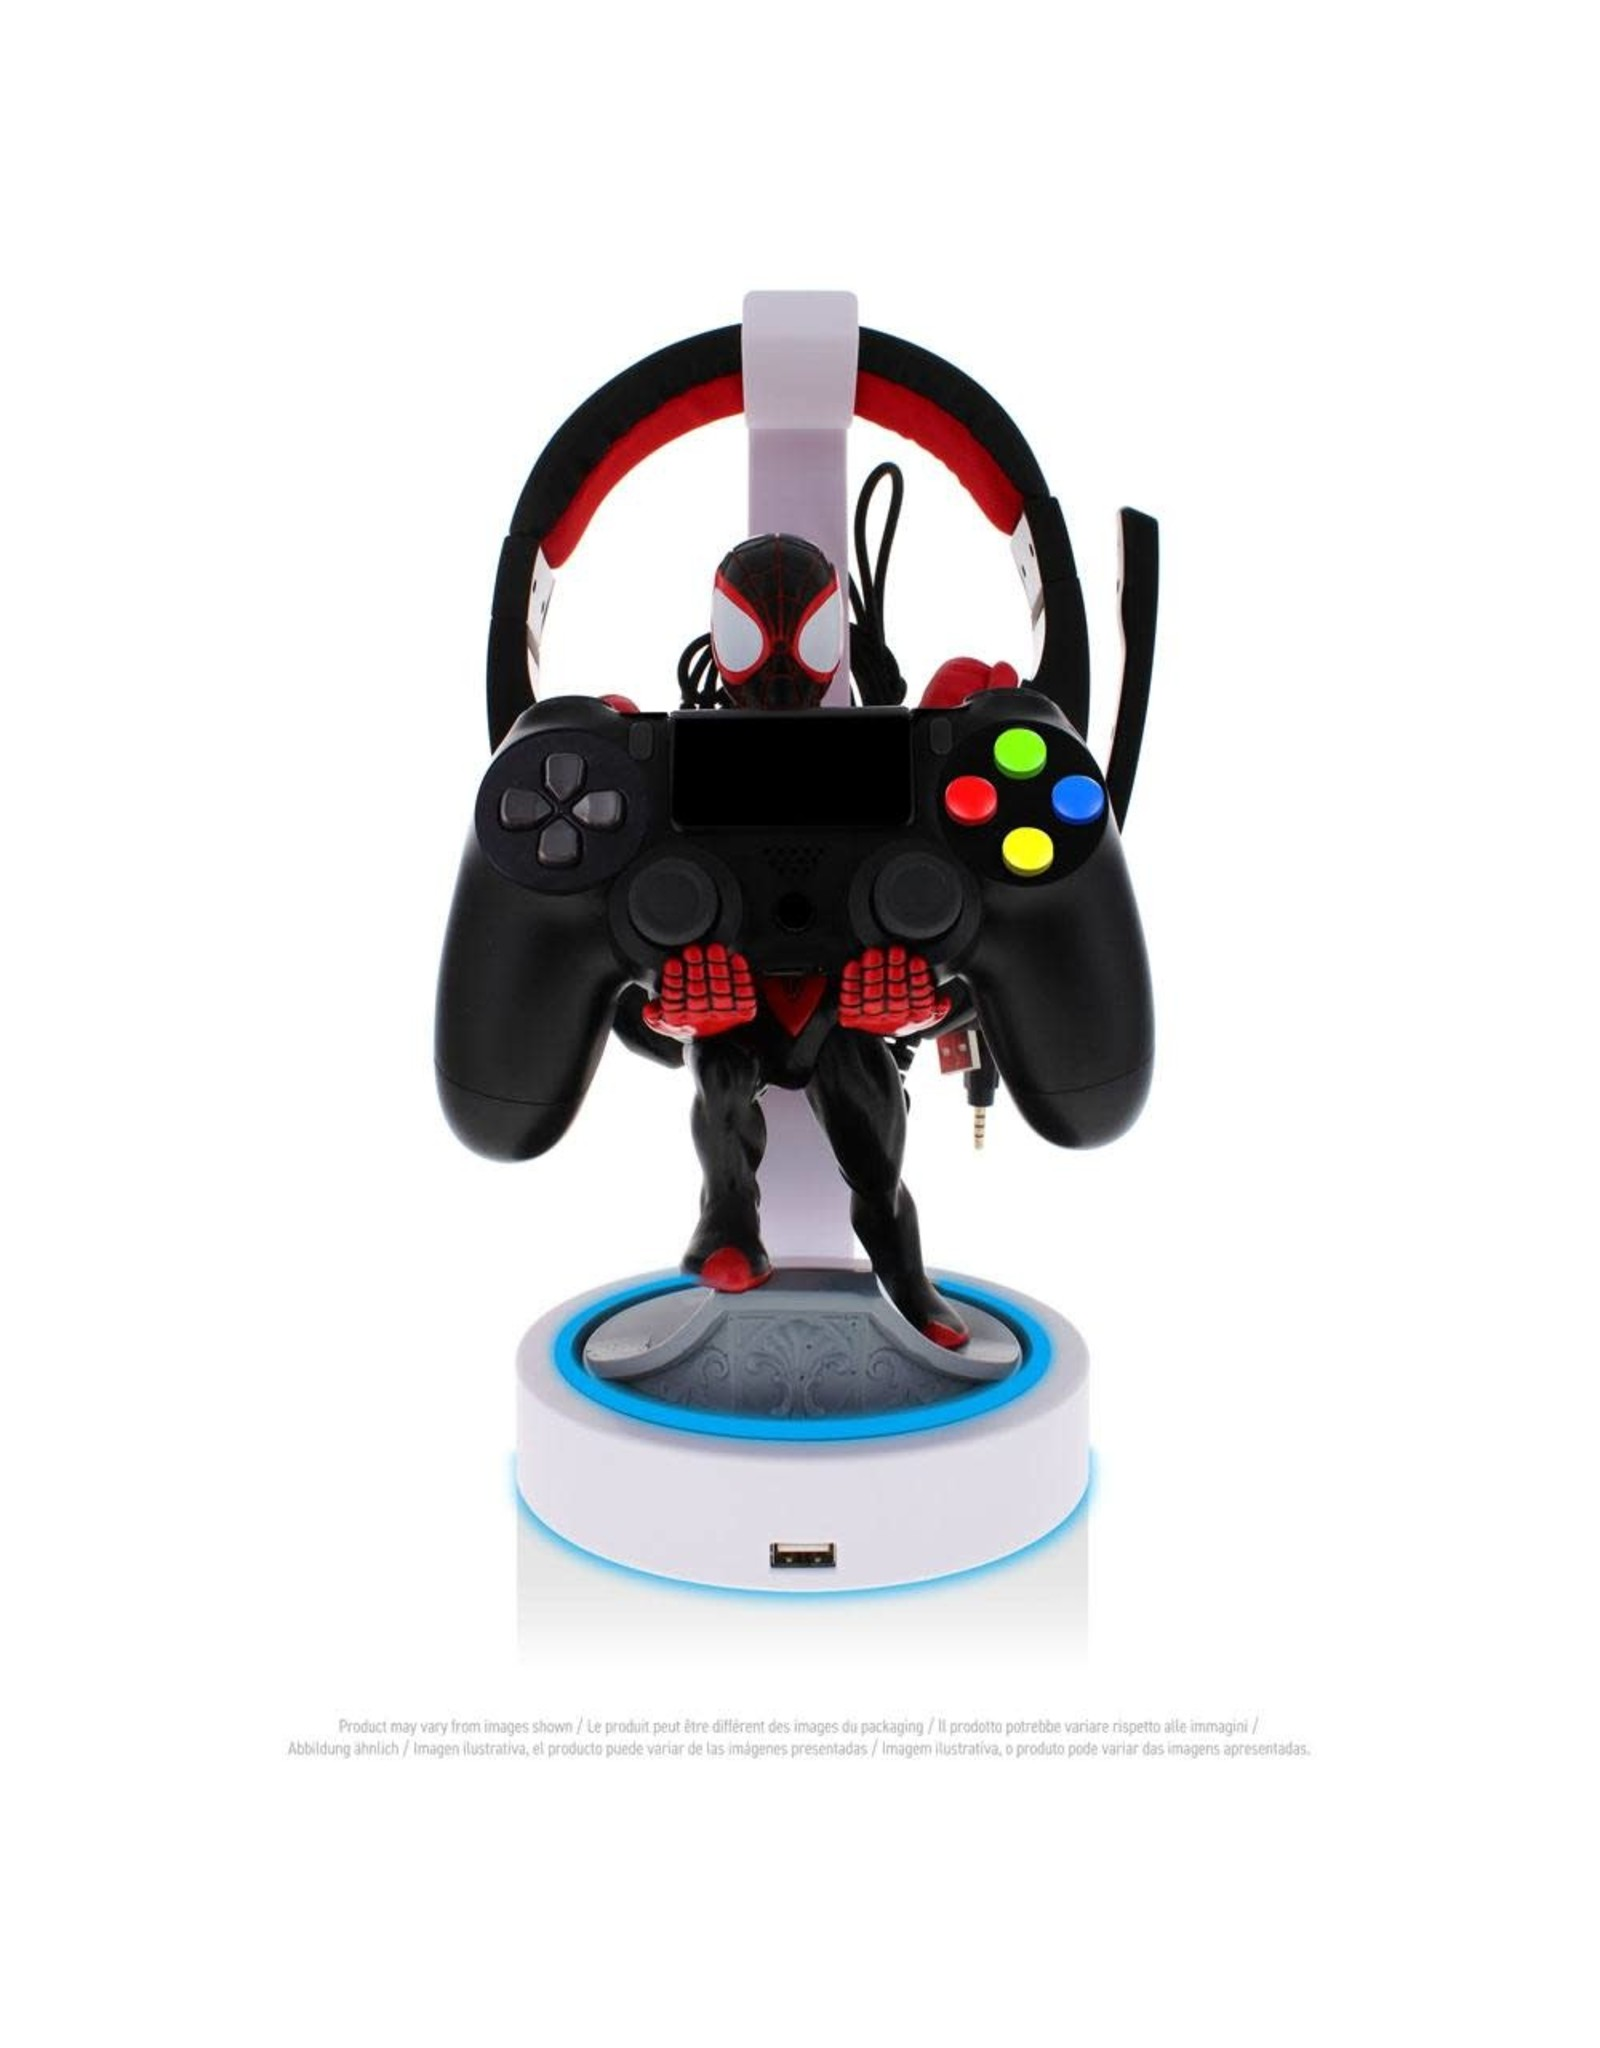 Exquisite Gaming CABLE GUY Power Stand 25cm - White